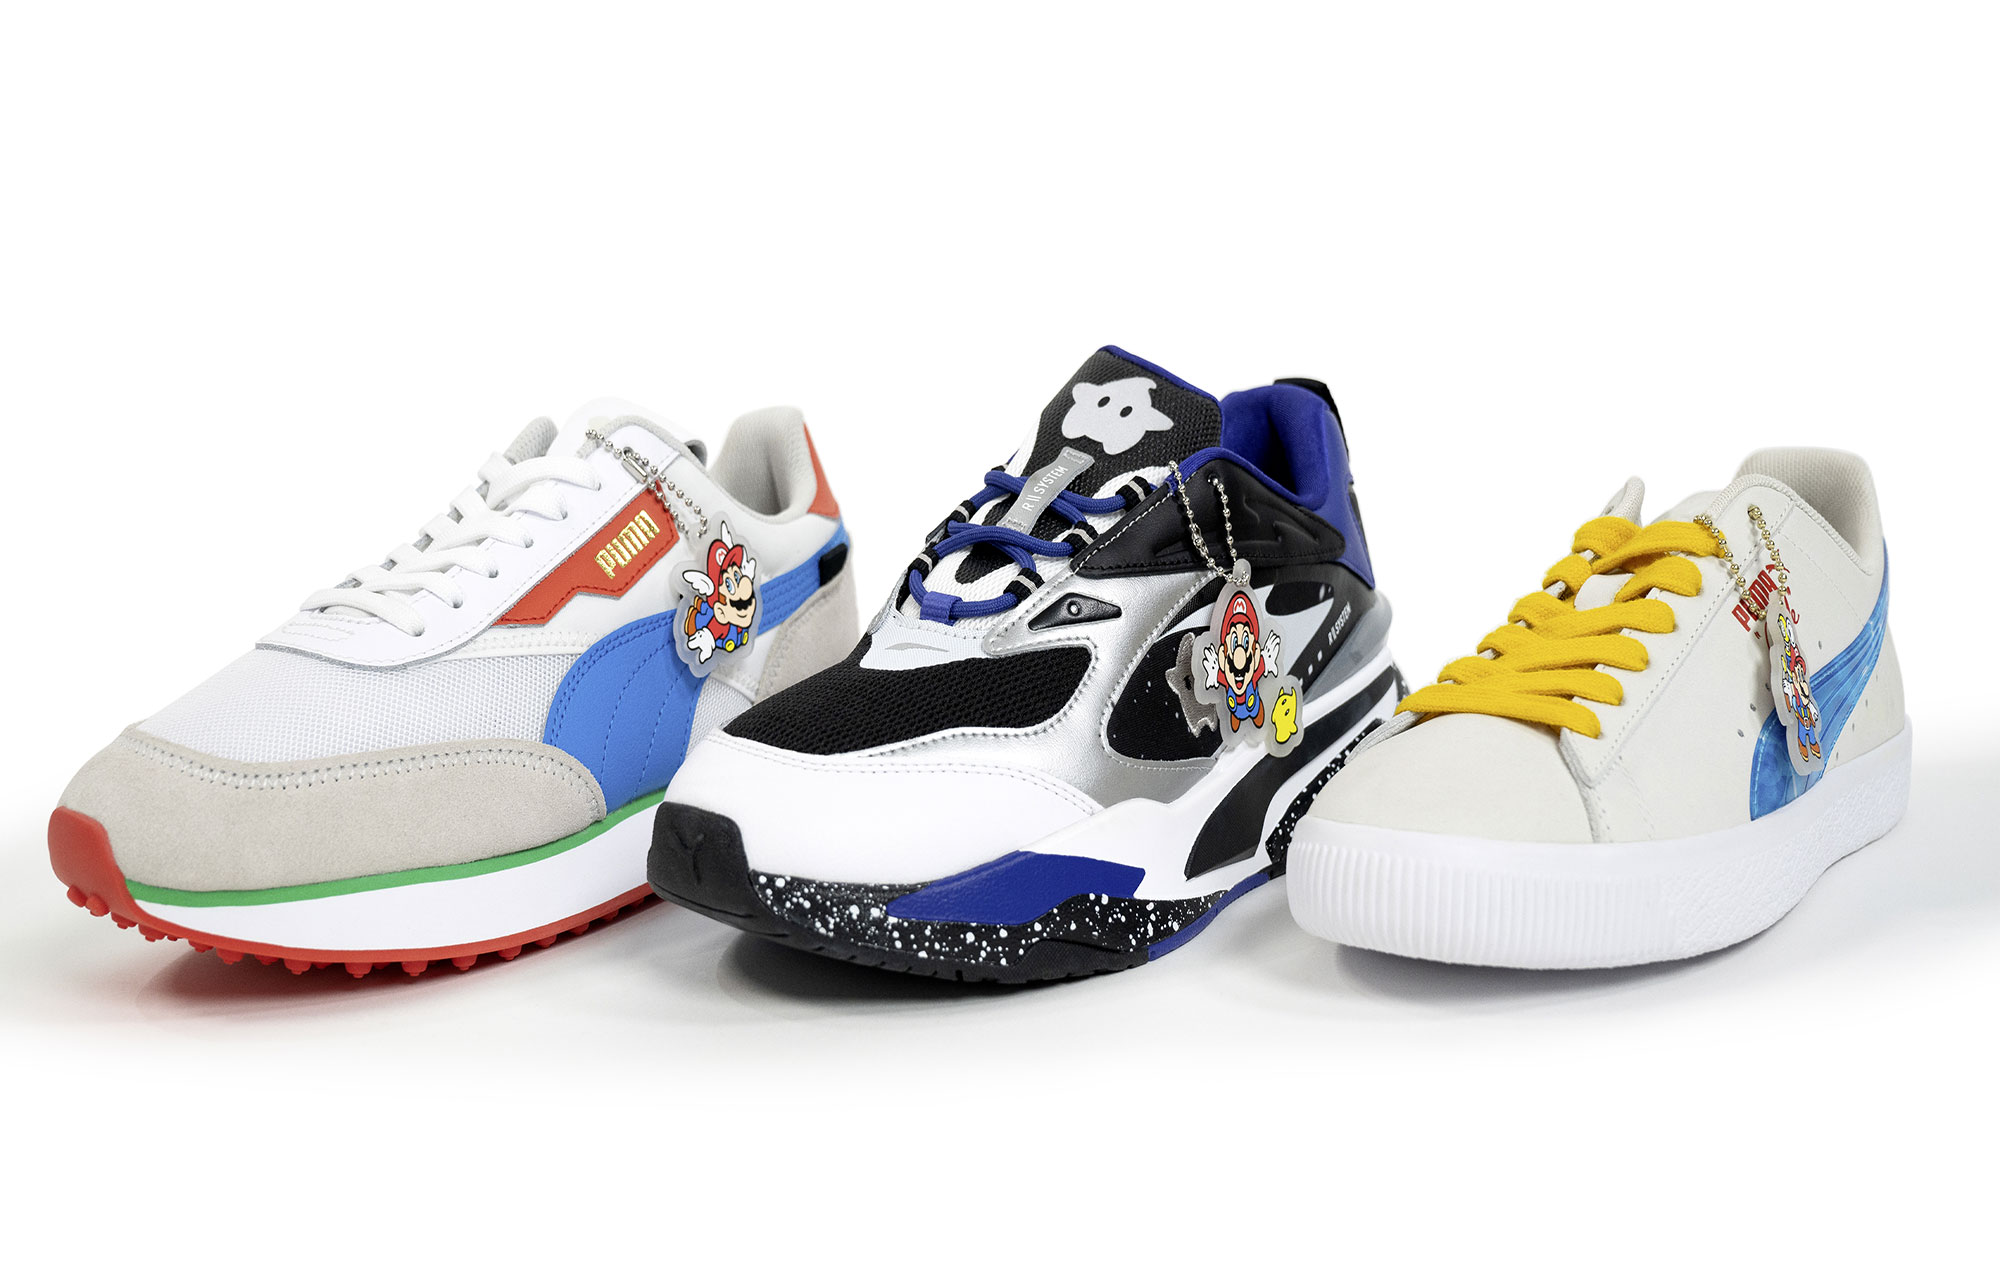 Super Mario' trainer collection announced by Puma